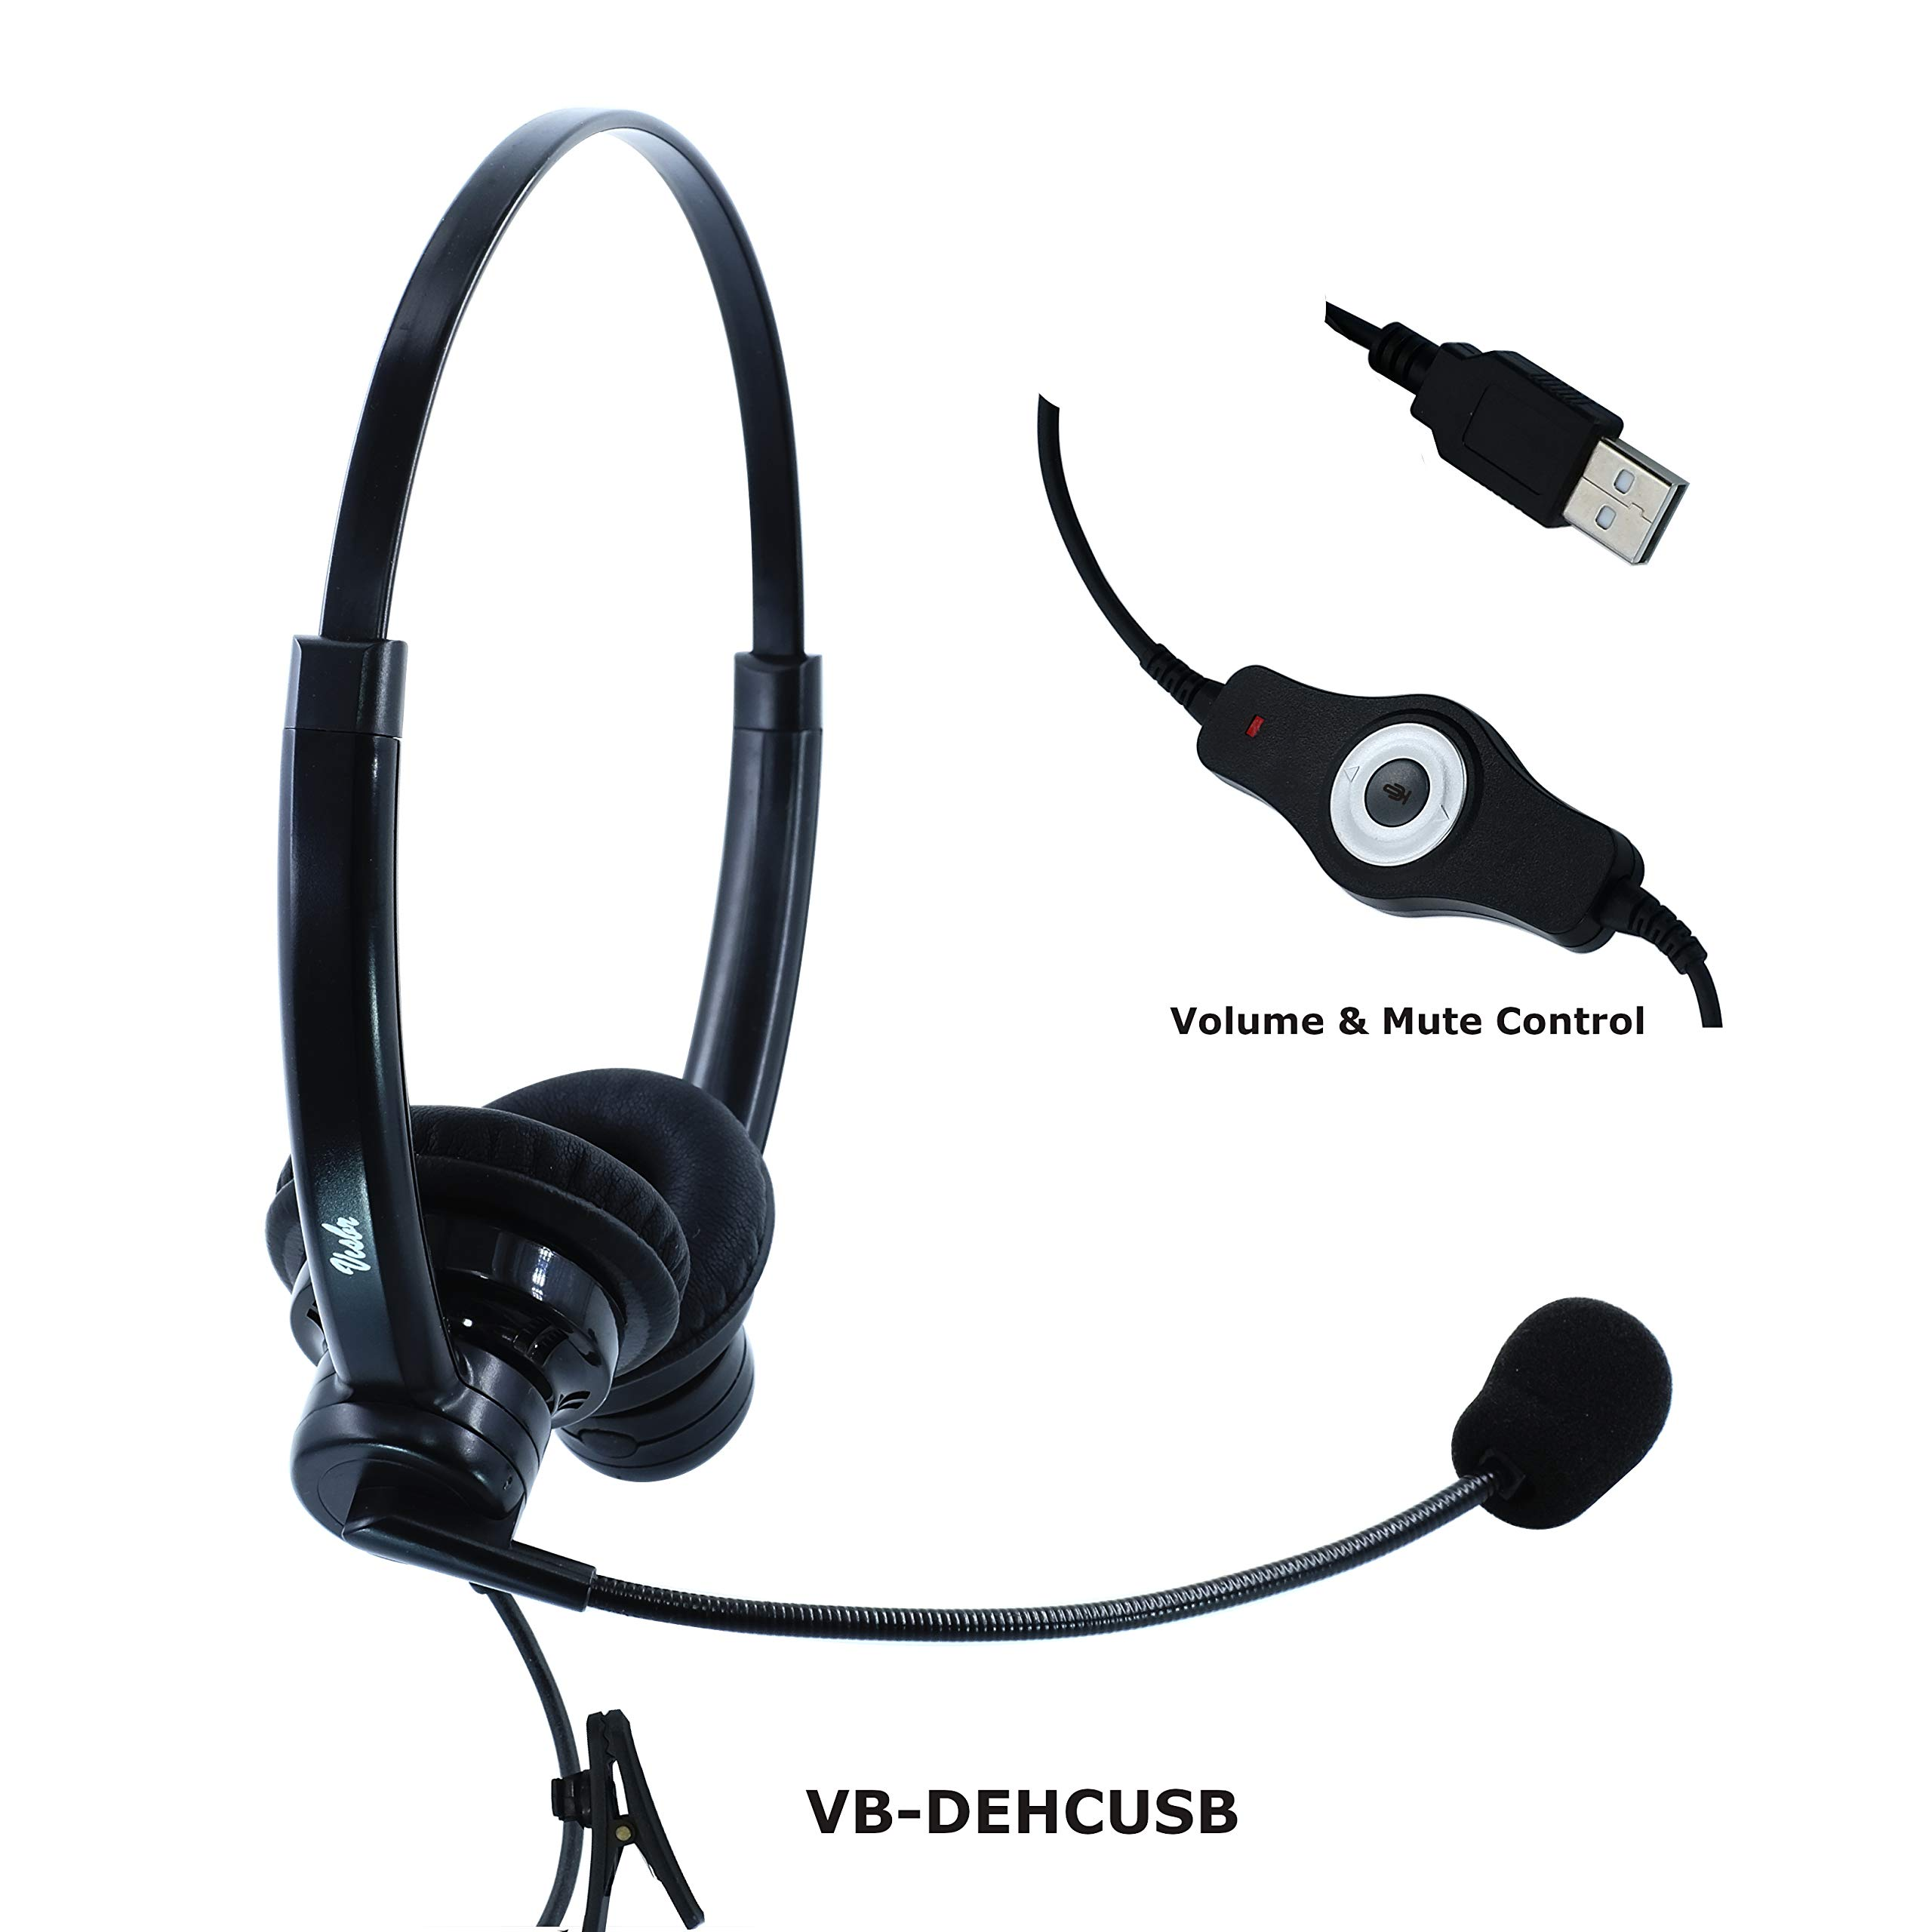 Two Ears USB Call Center Headset with Noise Canceling Microphone | for Windows, MAC, Linux